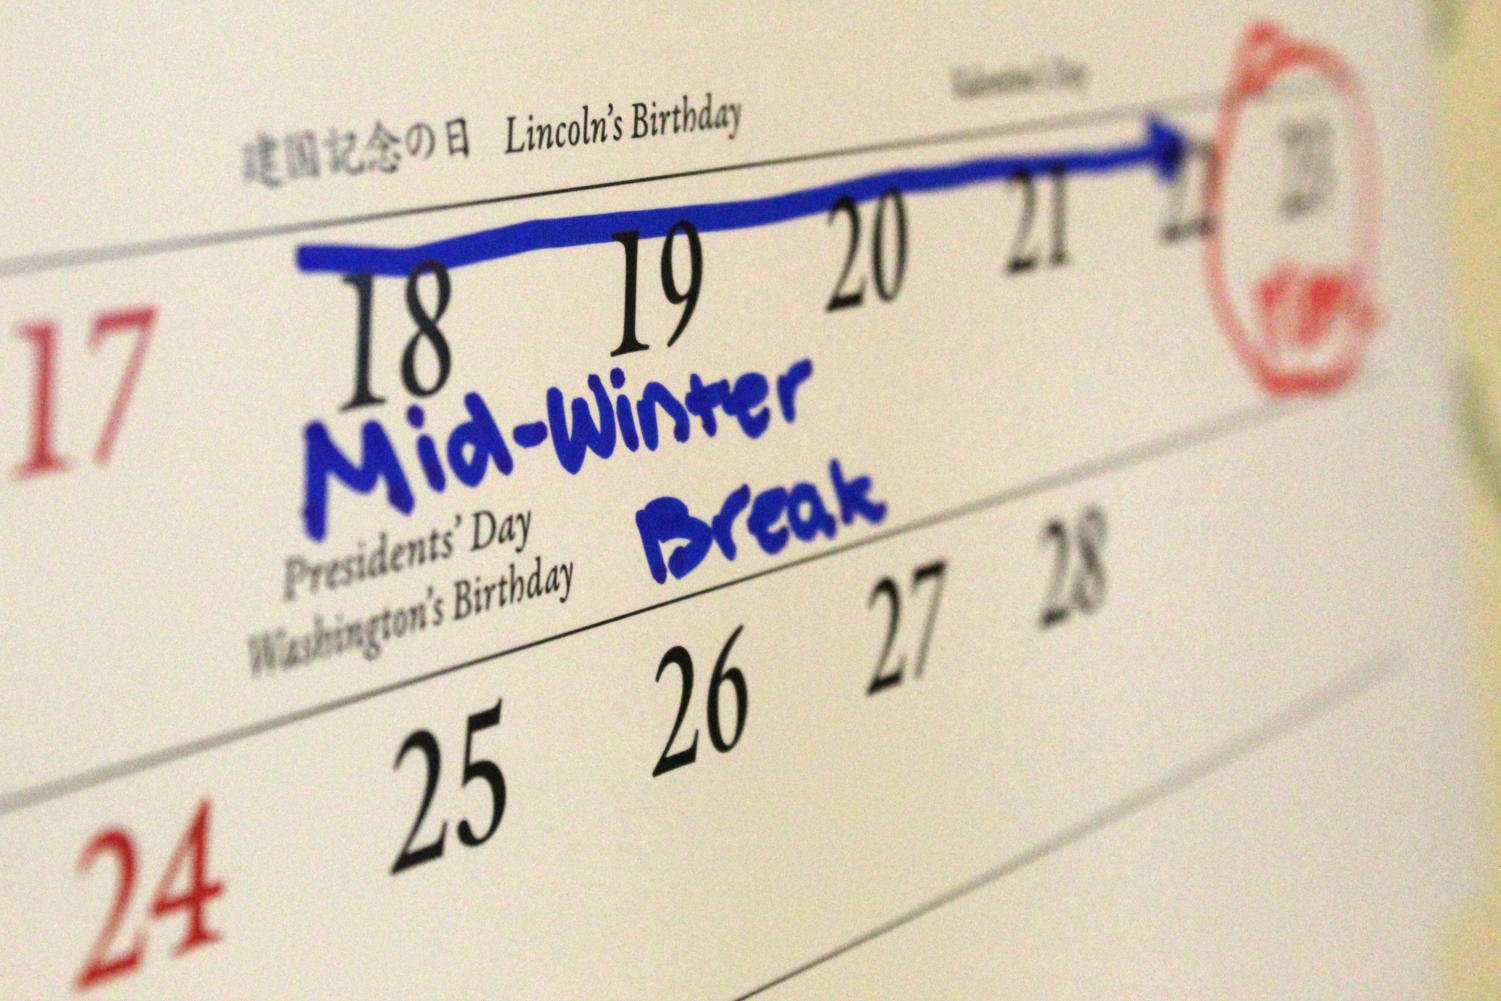 Mid-winter break gives students time to rest without the stress of school.